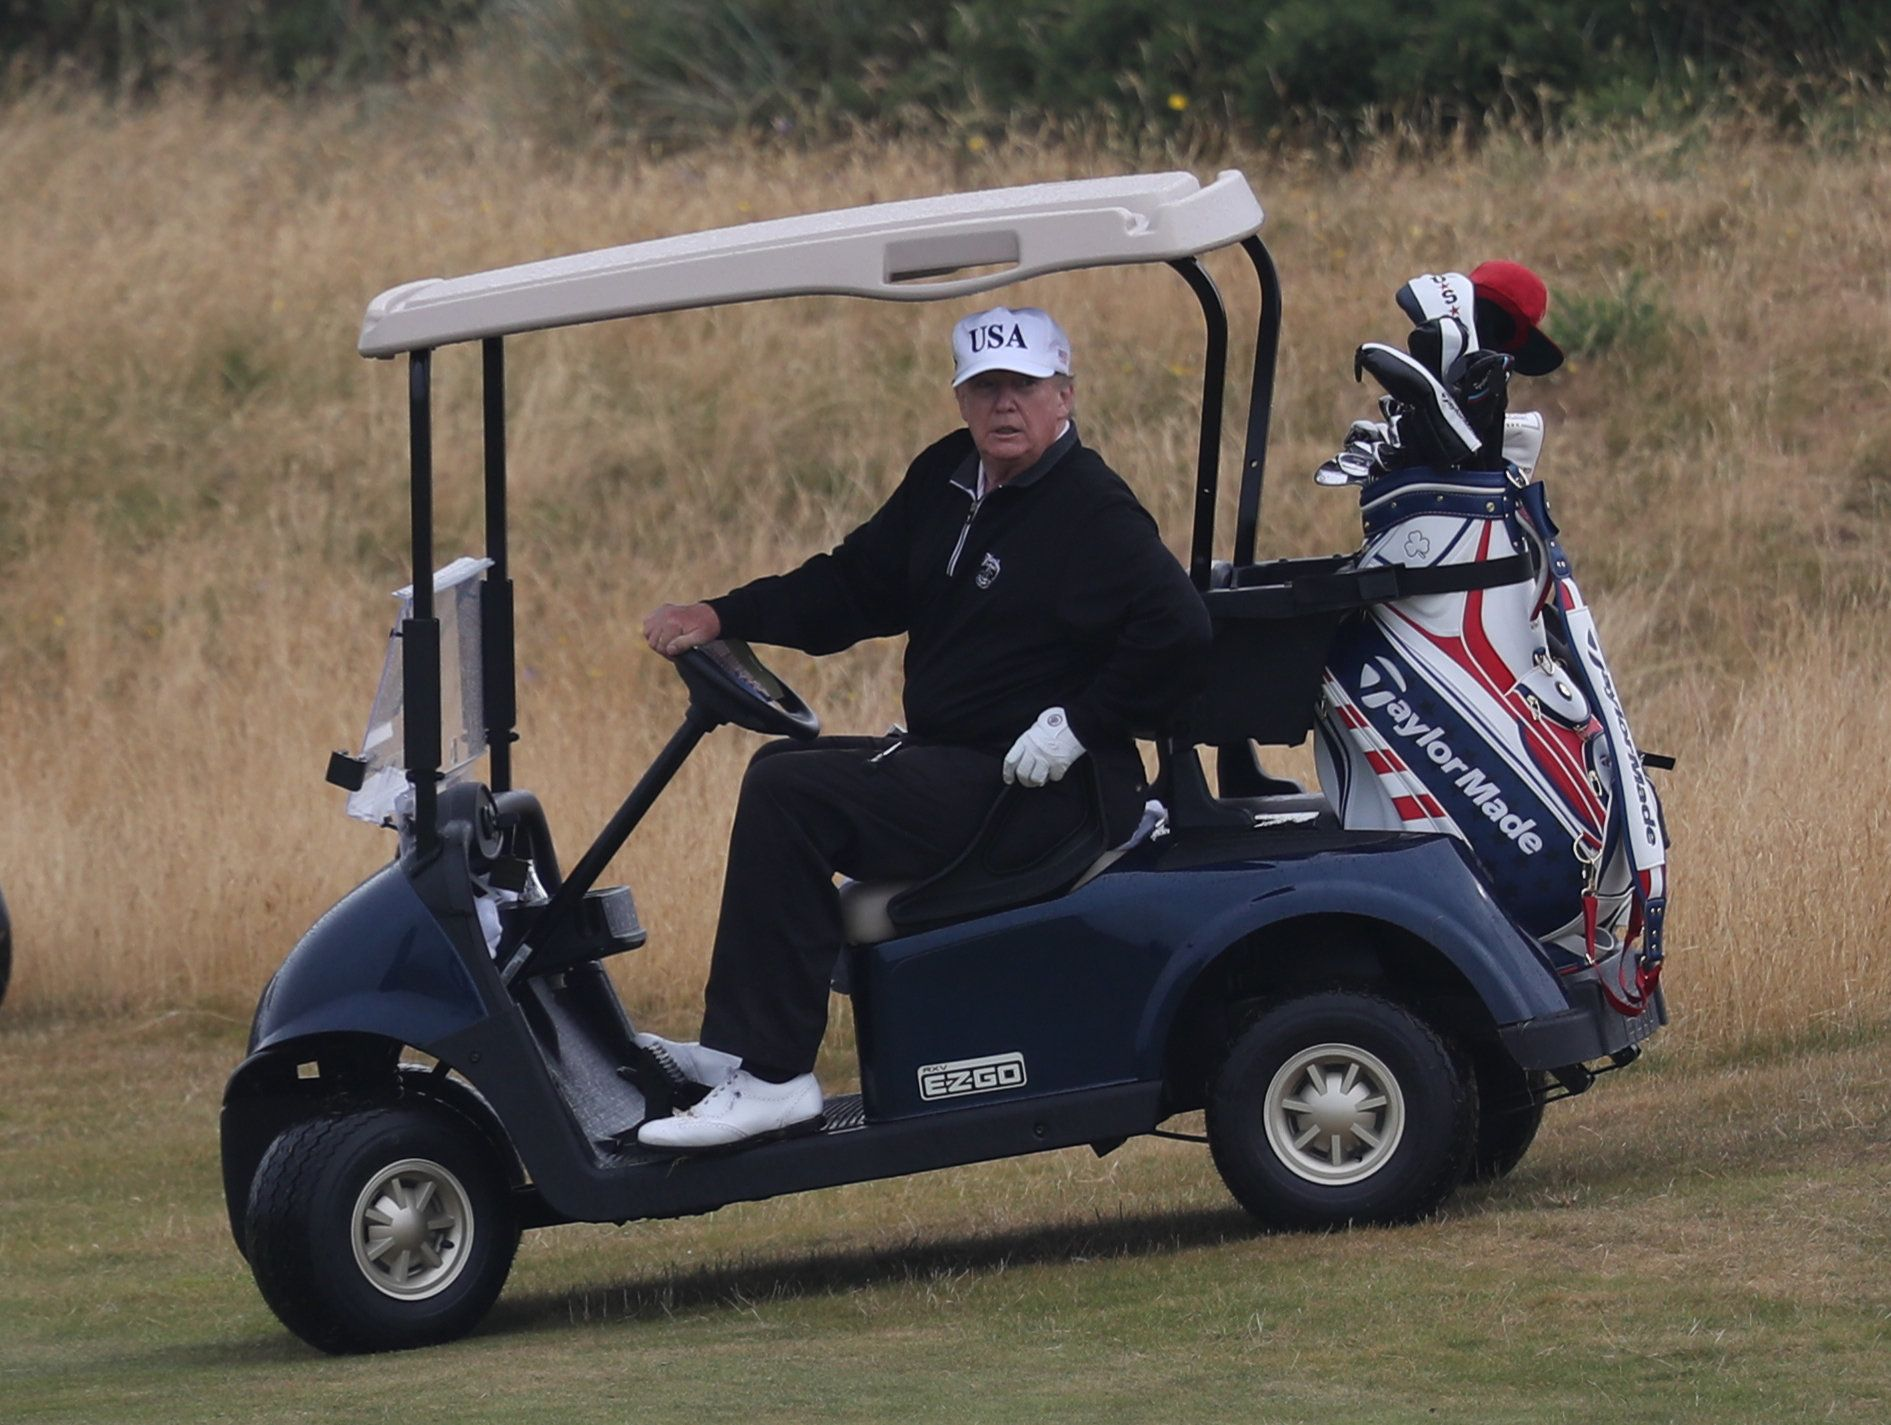 US President Donald Trump drives a golf buggy on his golf course at the Trump Turnberry resort in South Ayrshire, where he and his wife Melania, spent the weekend as part of their visit to the UK before leaving for Finland where he will meet Russian leader Vladimir Putin for talks on Monday. (Photo by Andrew Milligan/PA Images via Getty Images)